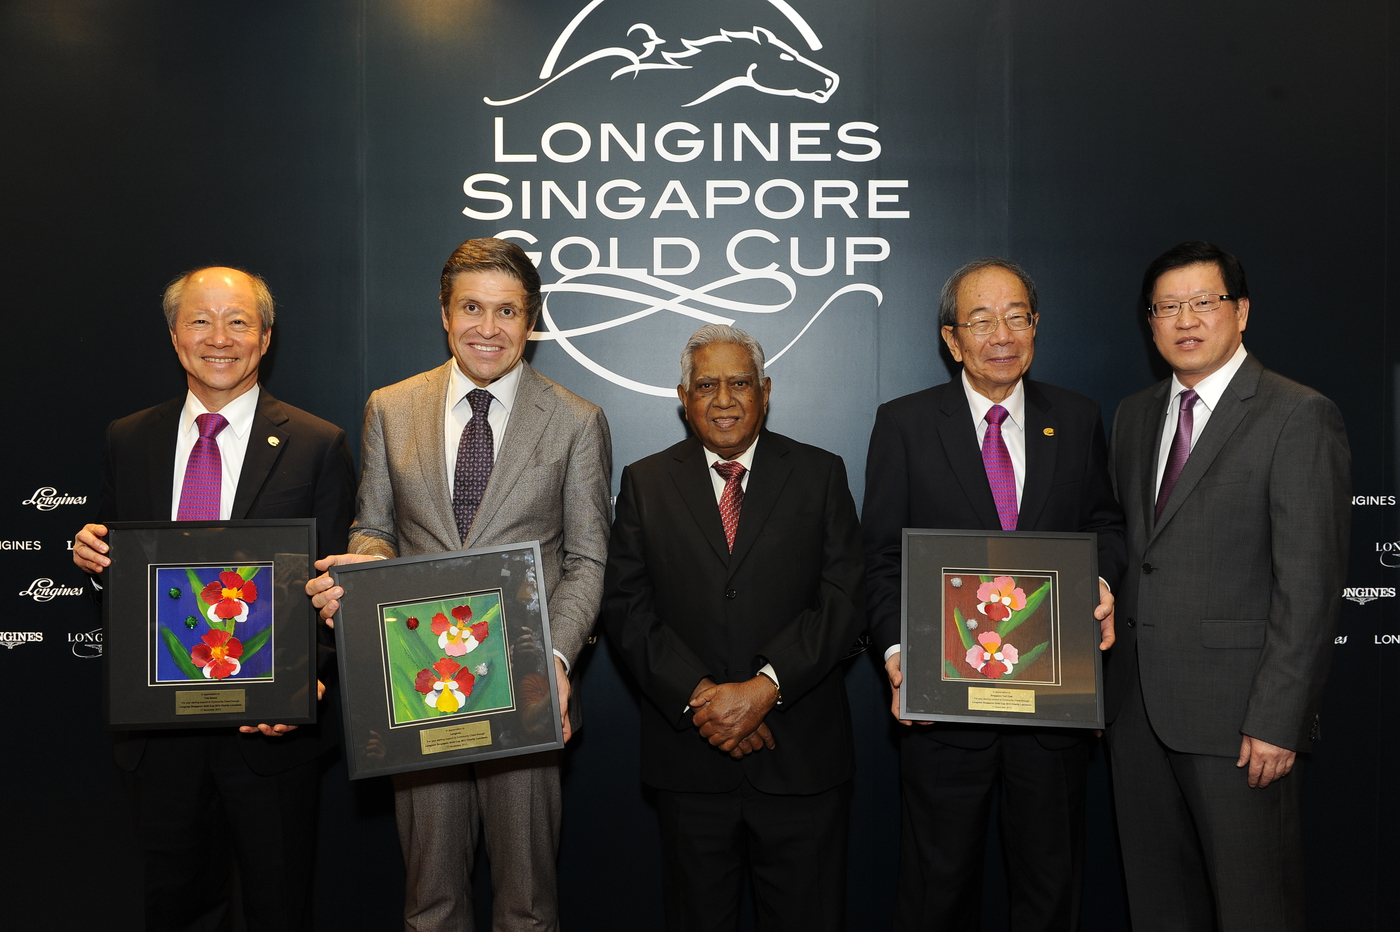 Longines Flat Racing Event: The prestigious Longines Singapore Gold Cup 2013 raises S$374,483 for charity 1